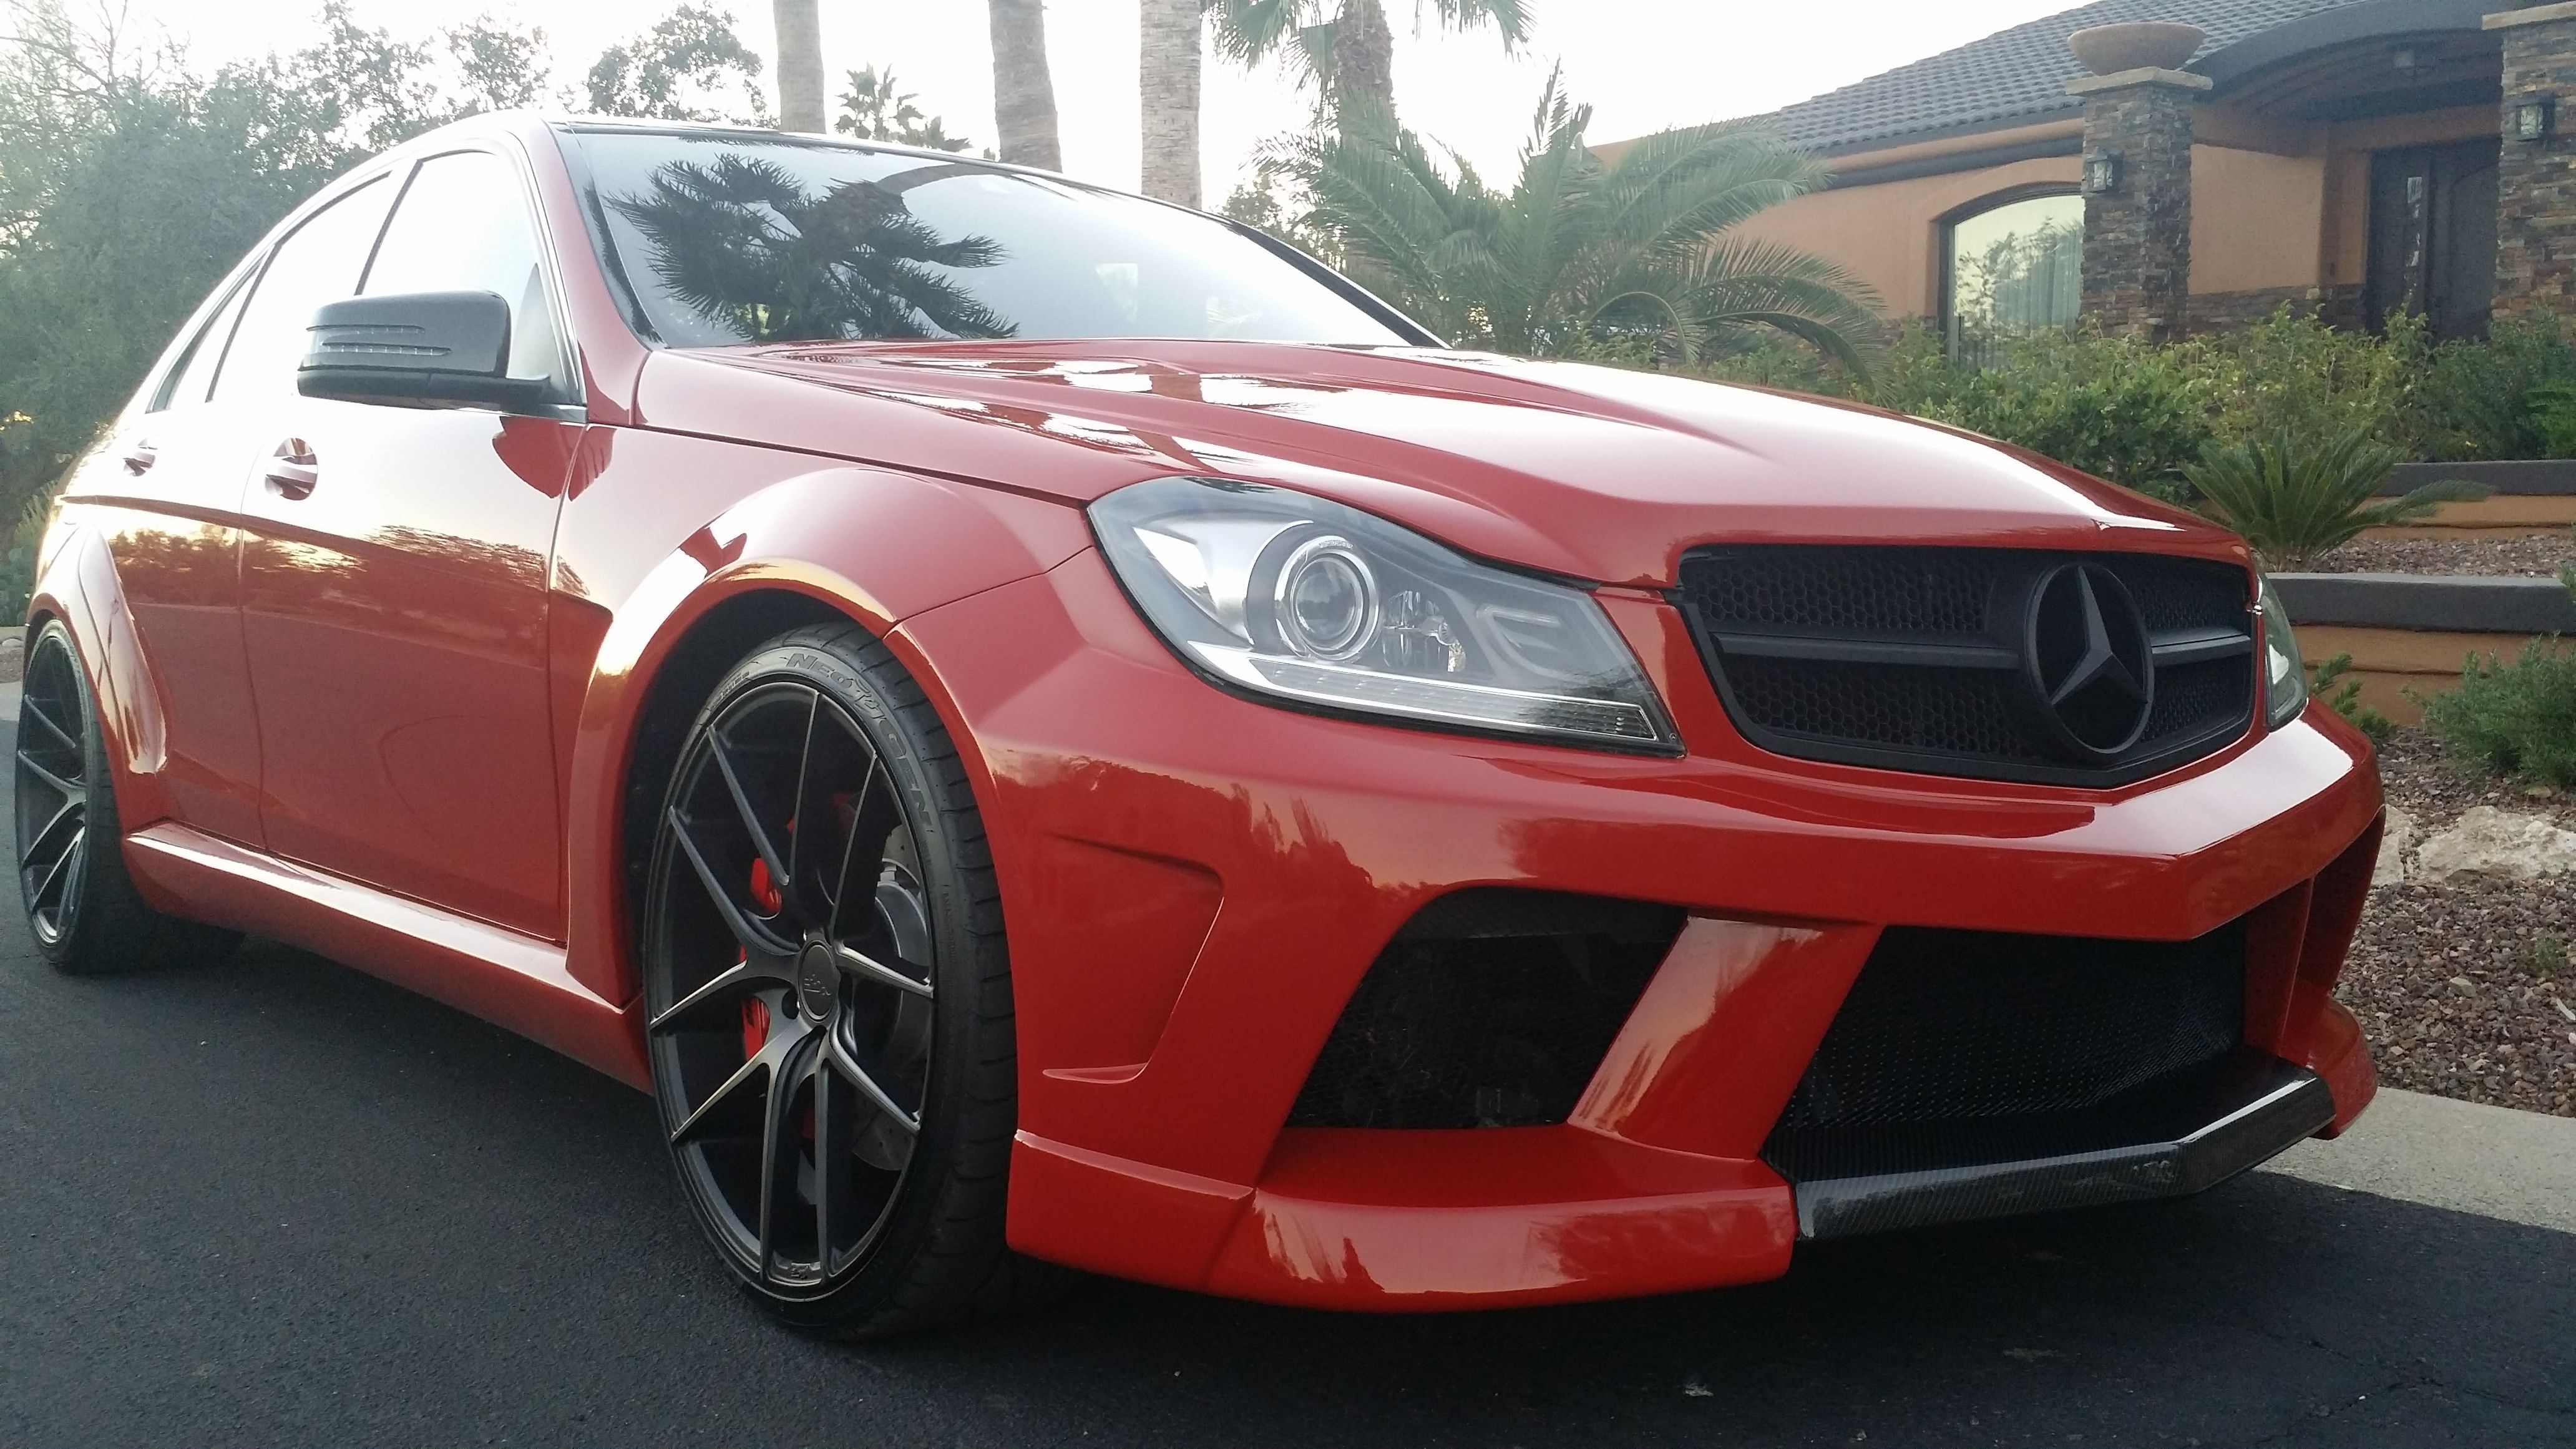 MISHA Designs - New Mercedes C-class wide body kit! - Page 7